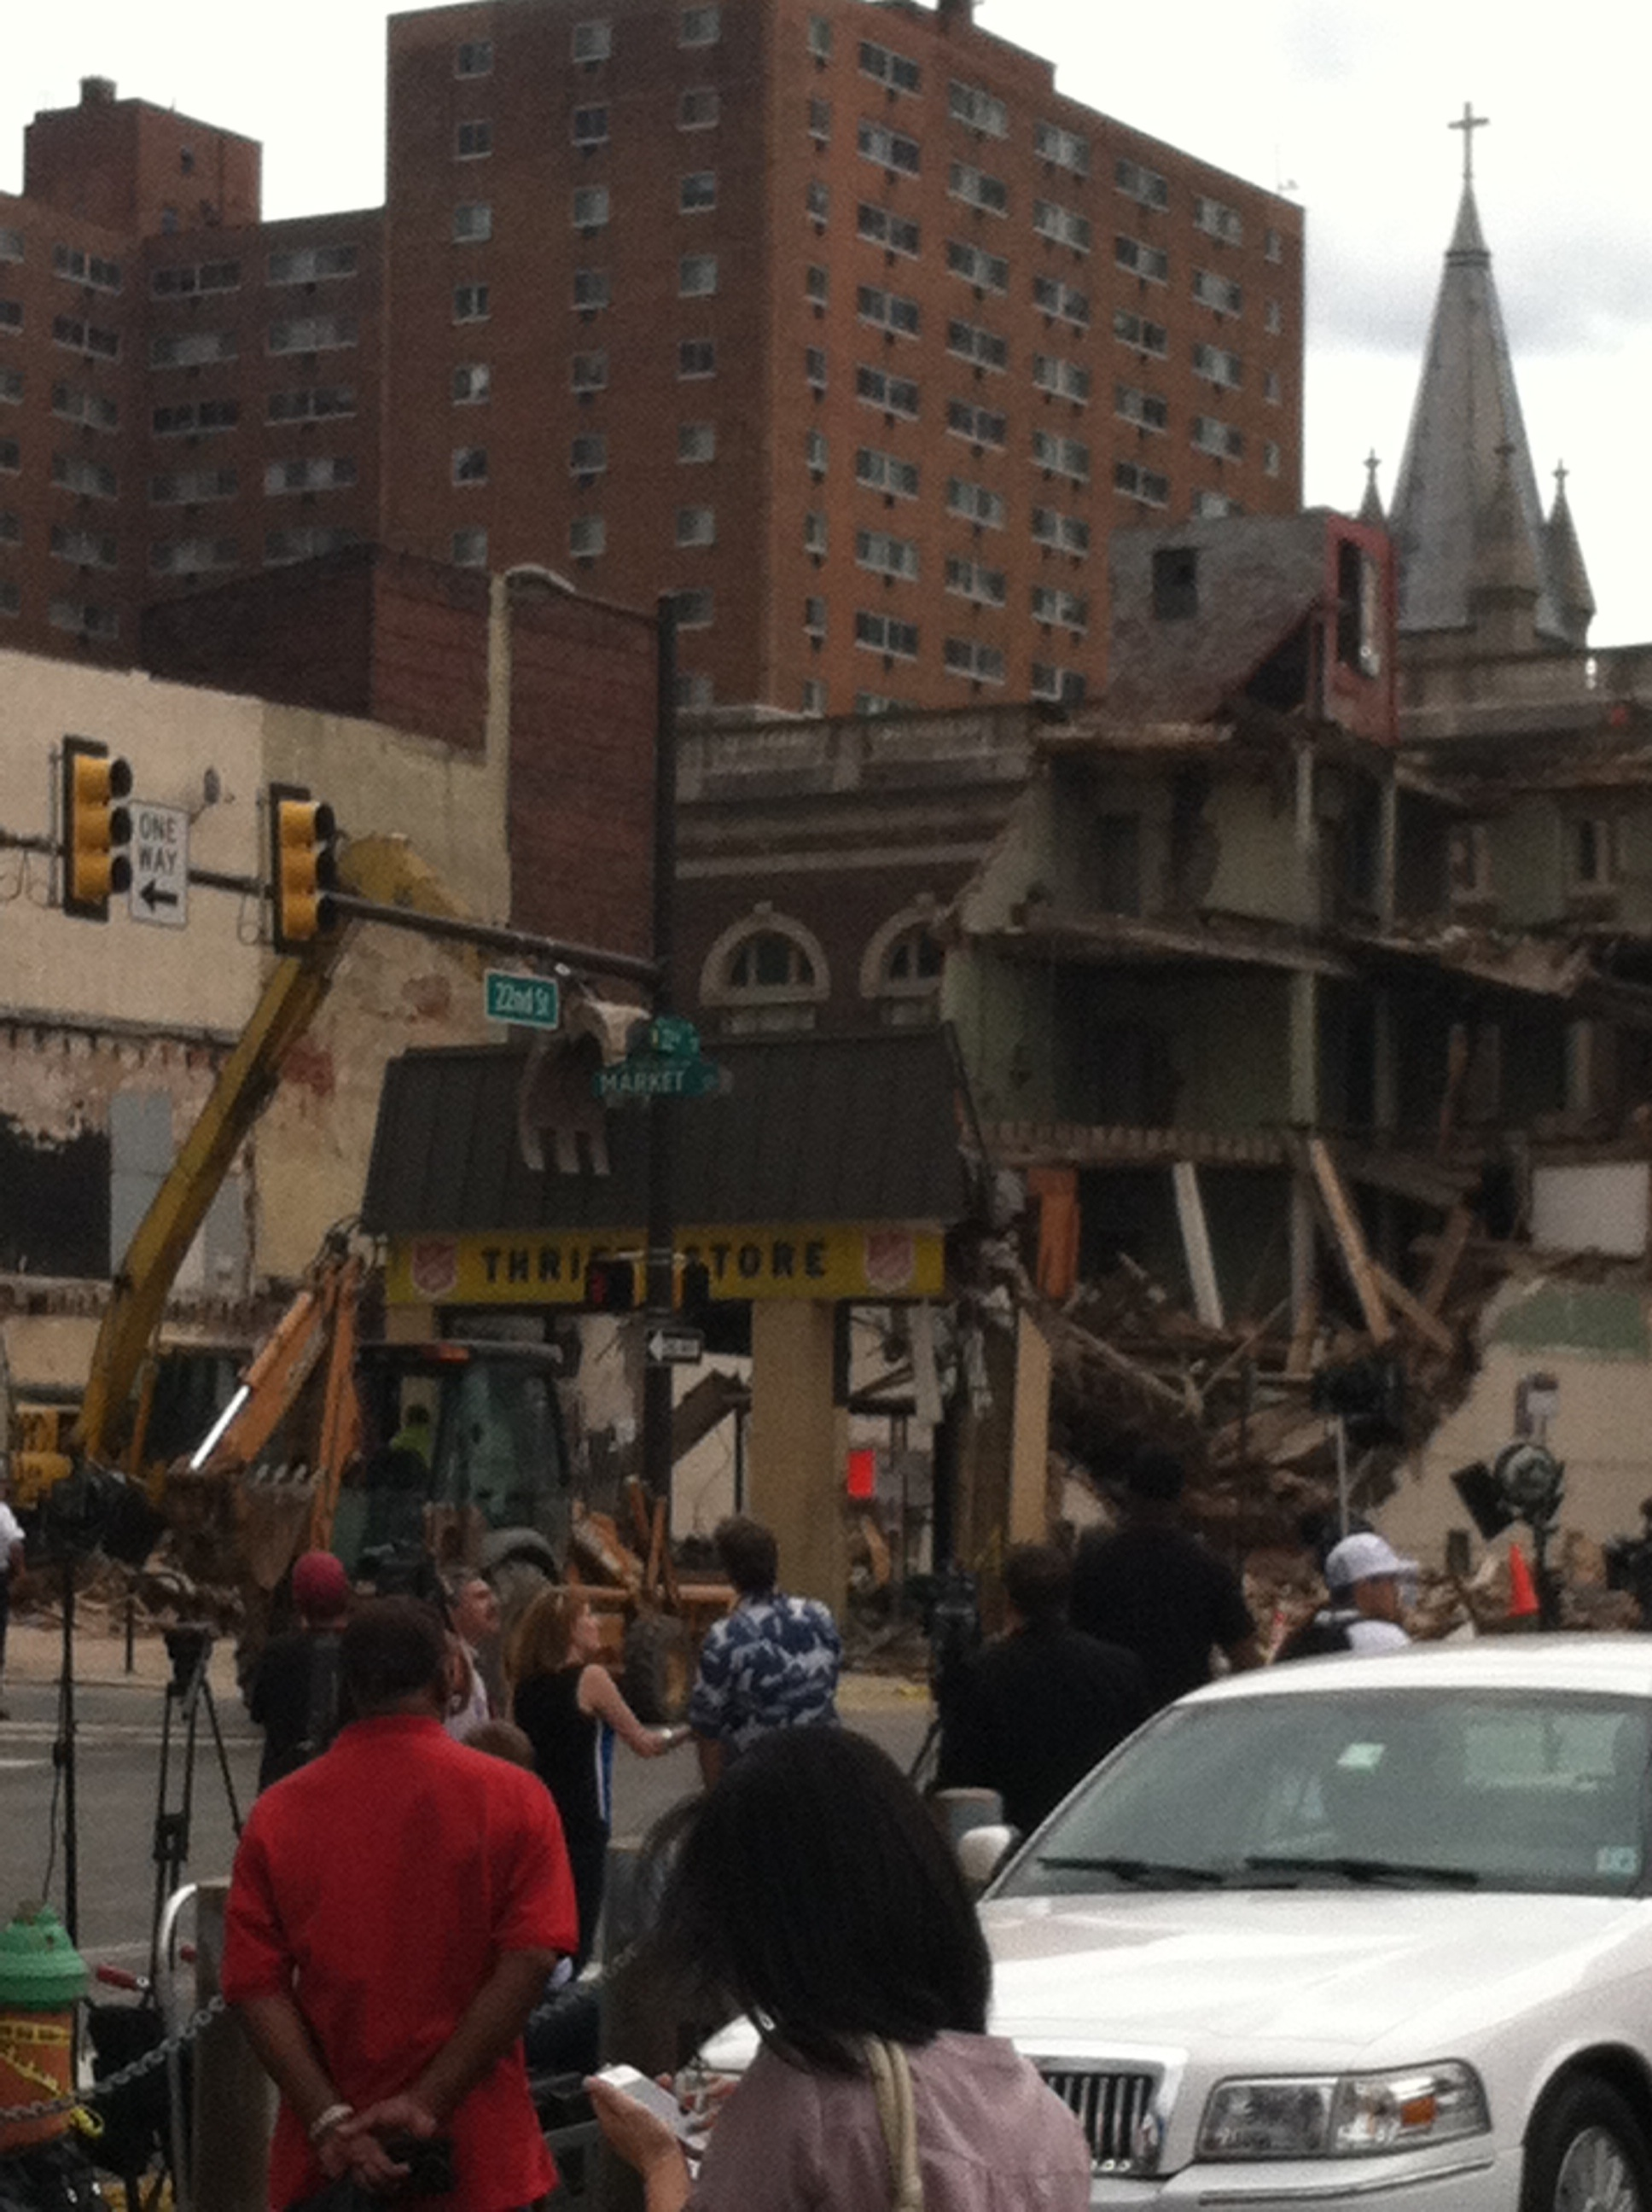 The storefront of the Salvation Army thrift store crushed by the falling building. I took this photo on Thursday after the collapse and before the storefront was taken down.